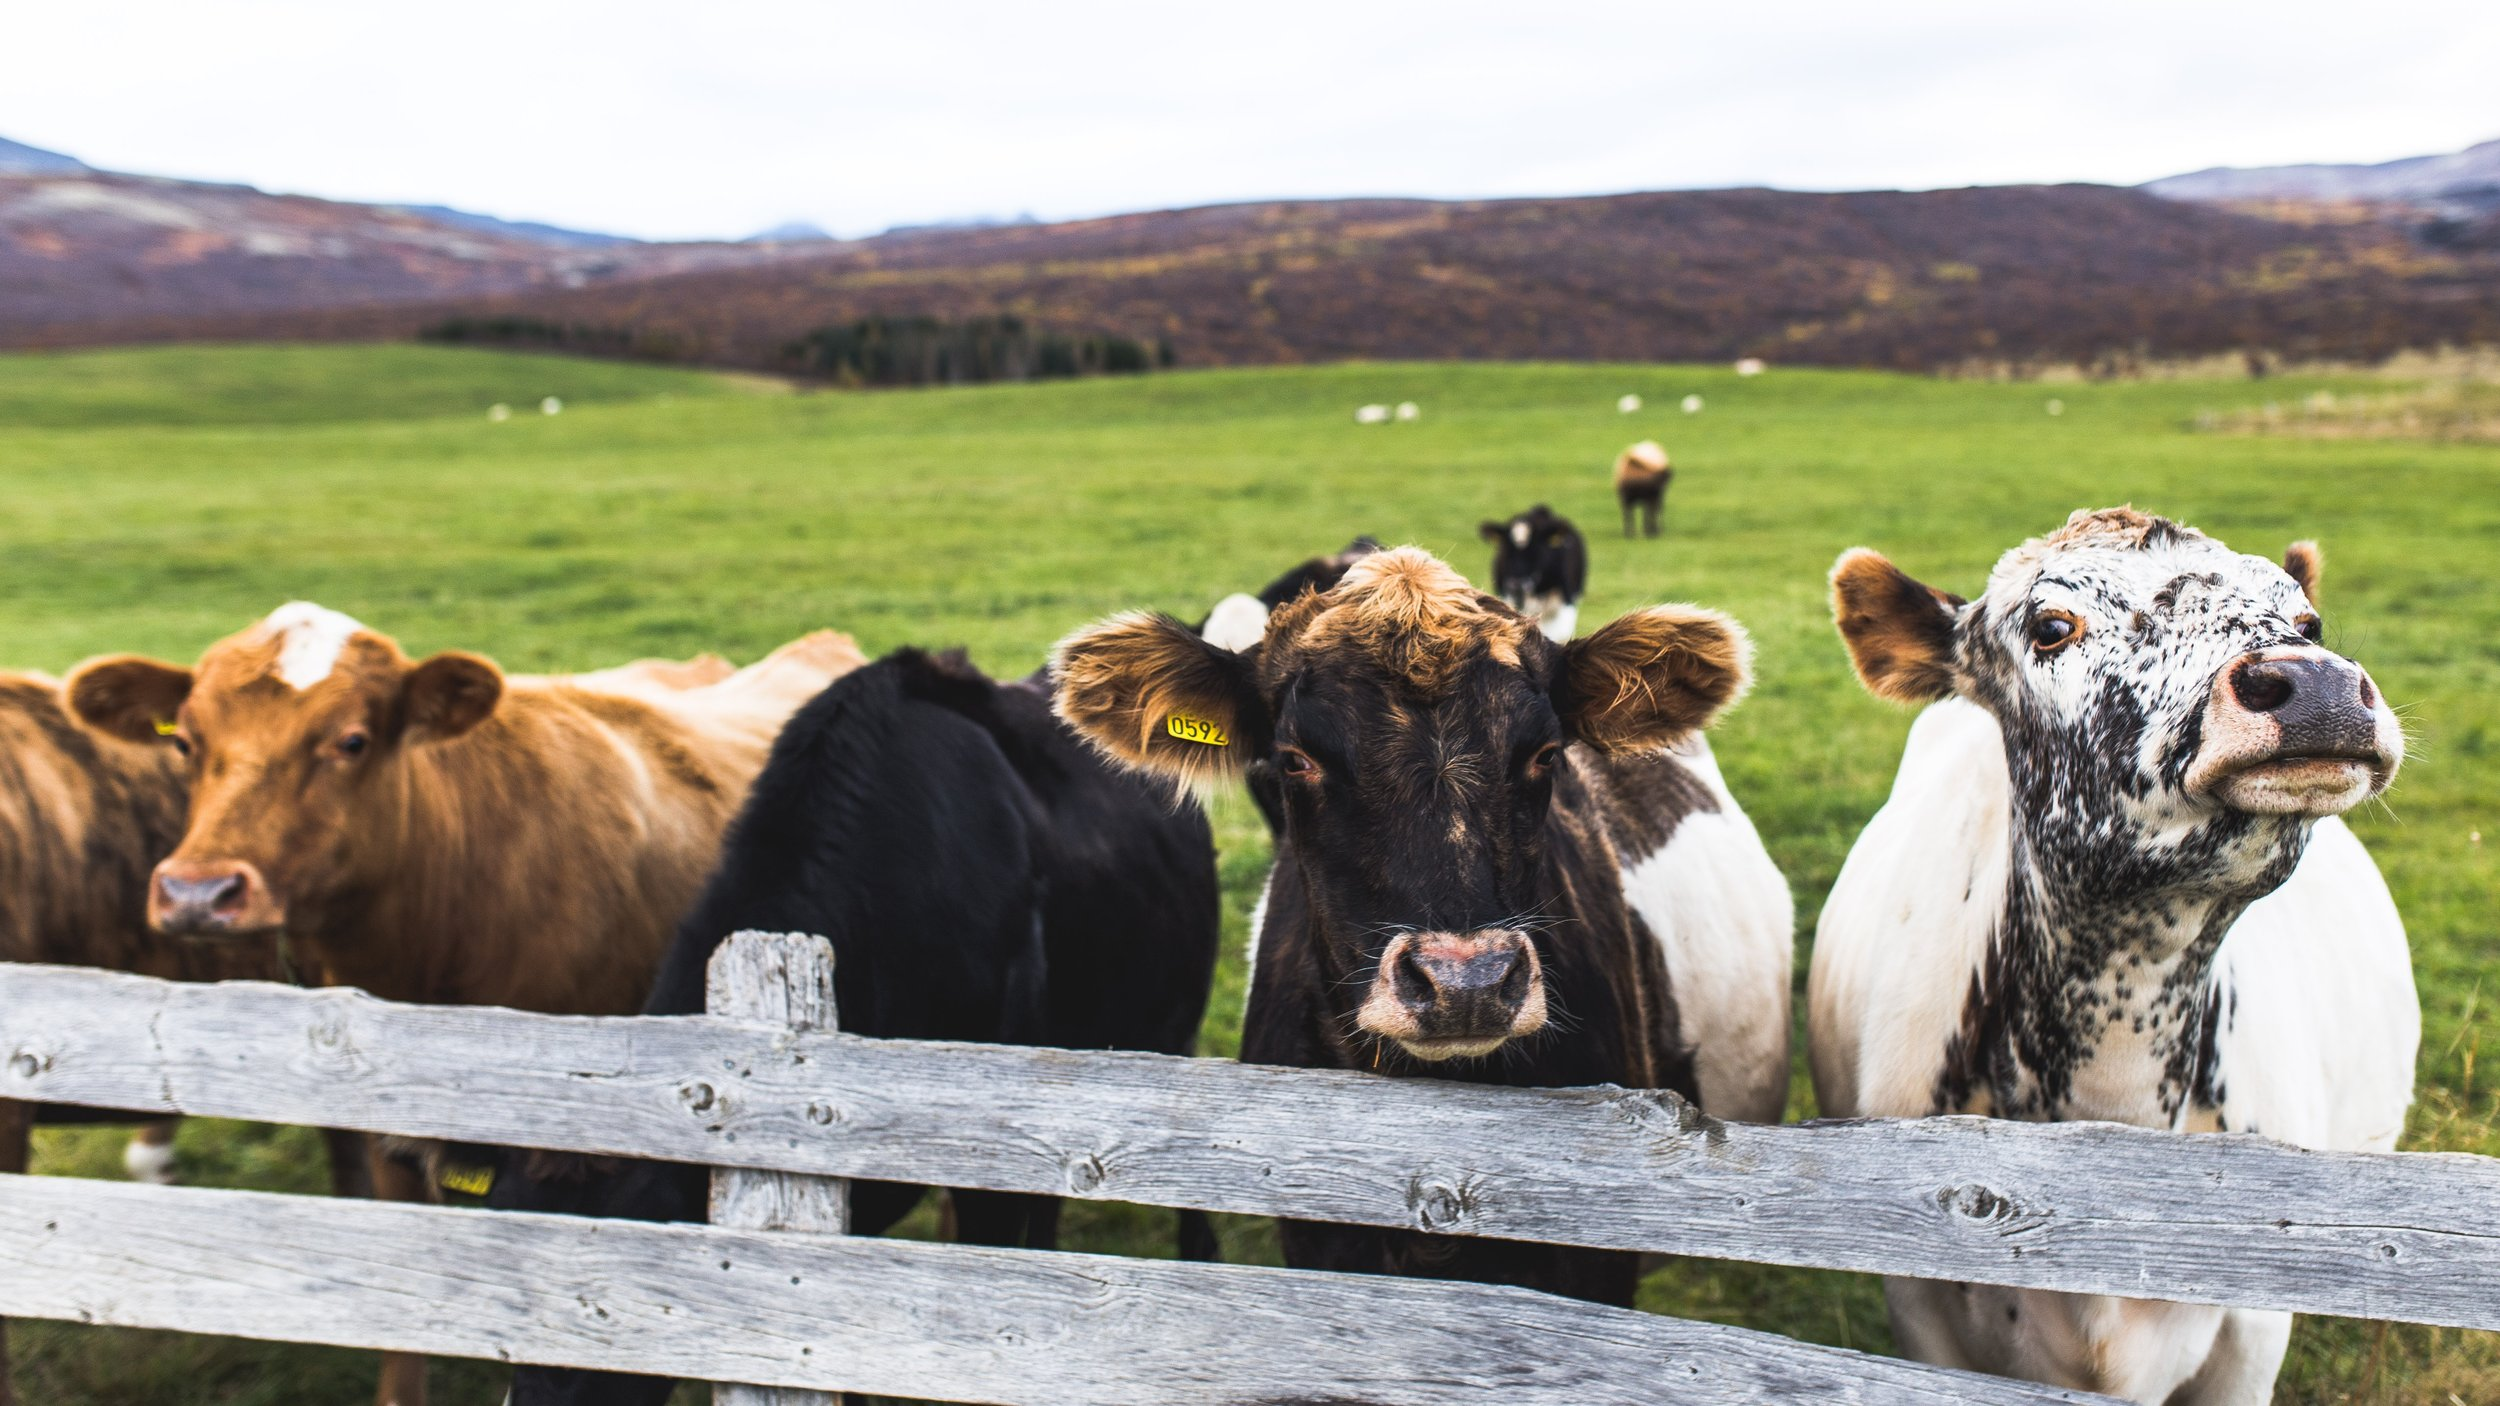 Raising ruminant animals on grass allows them to live a life in-line with their biological needs, while producing meat that is healthier than grain-fed meat.